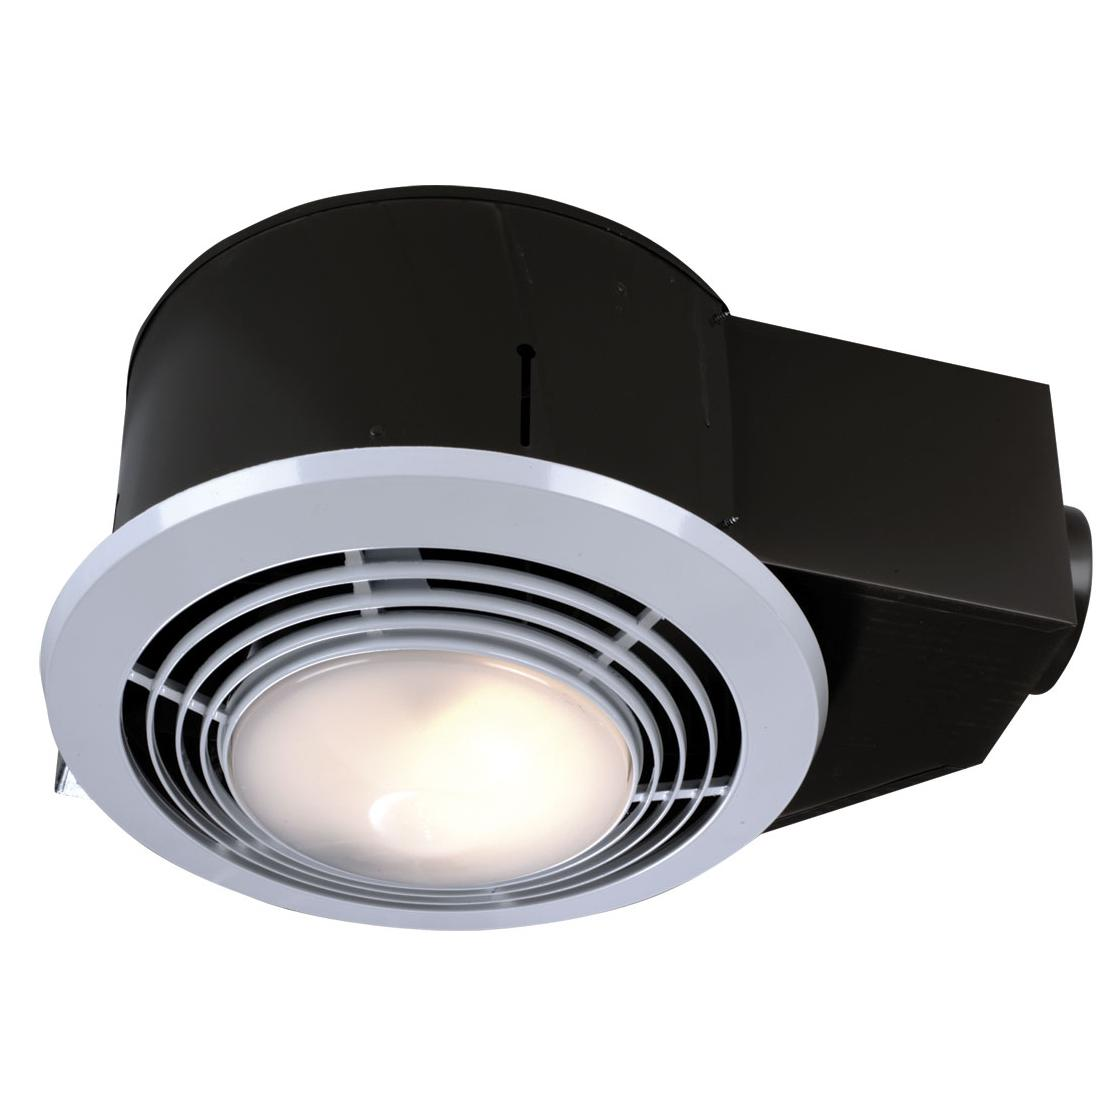 Bathroom Exhaust Fan Light Combo